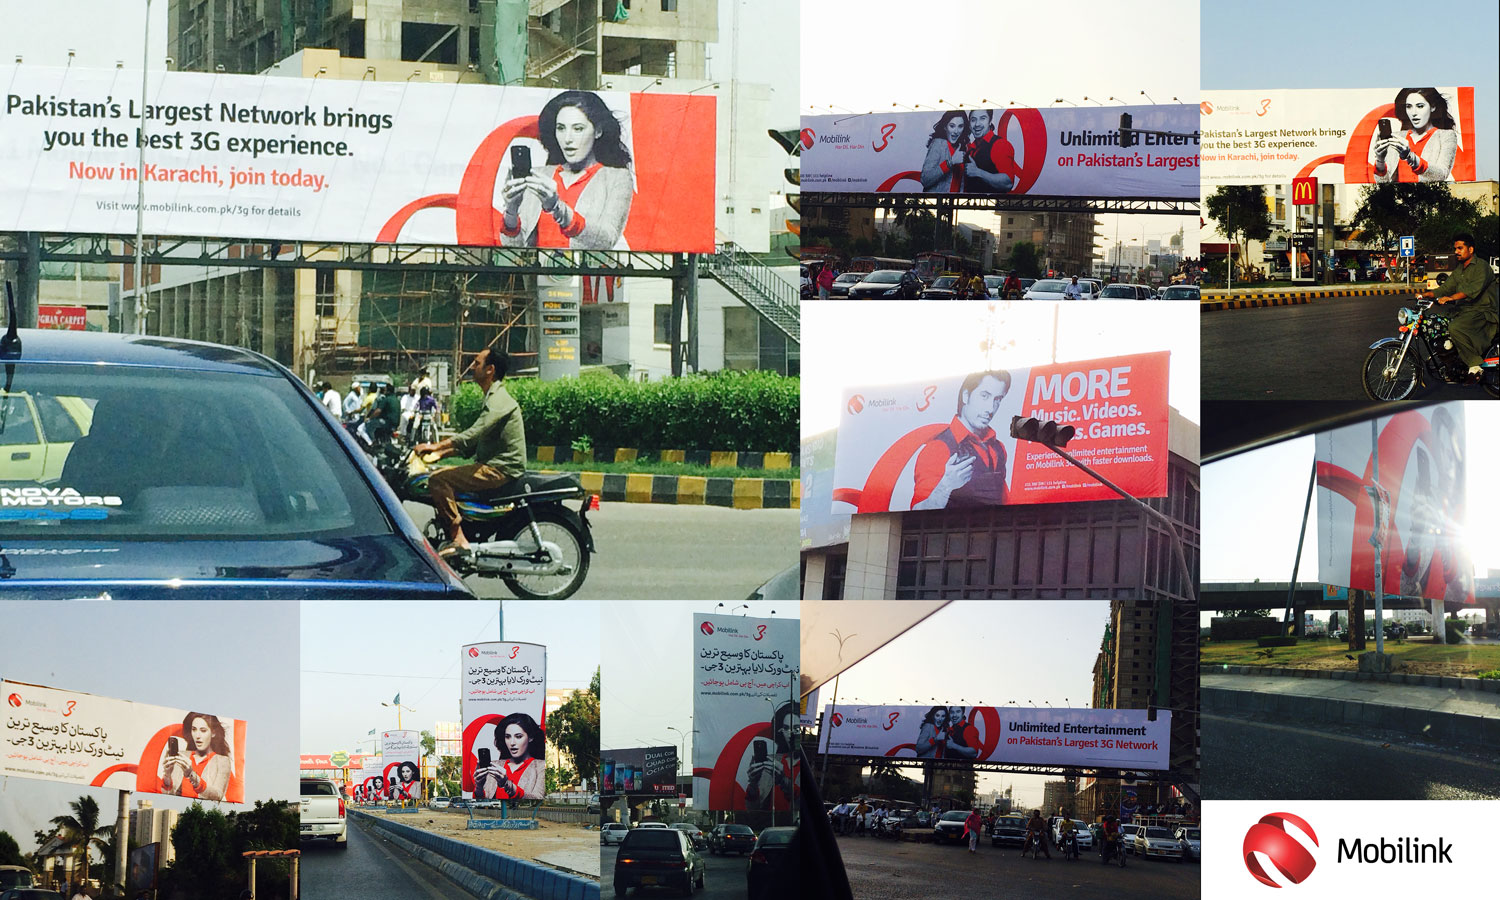 mobilink telecom pakistan website billboards